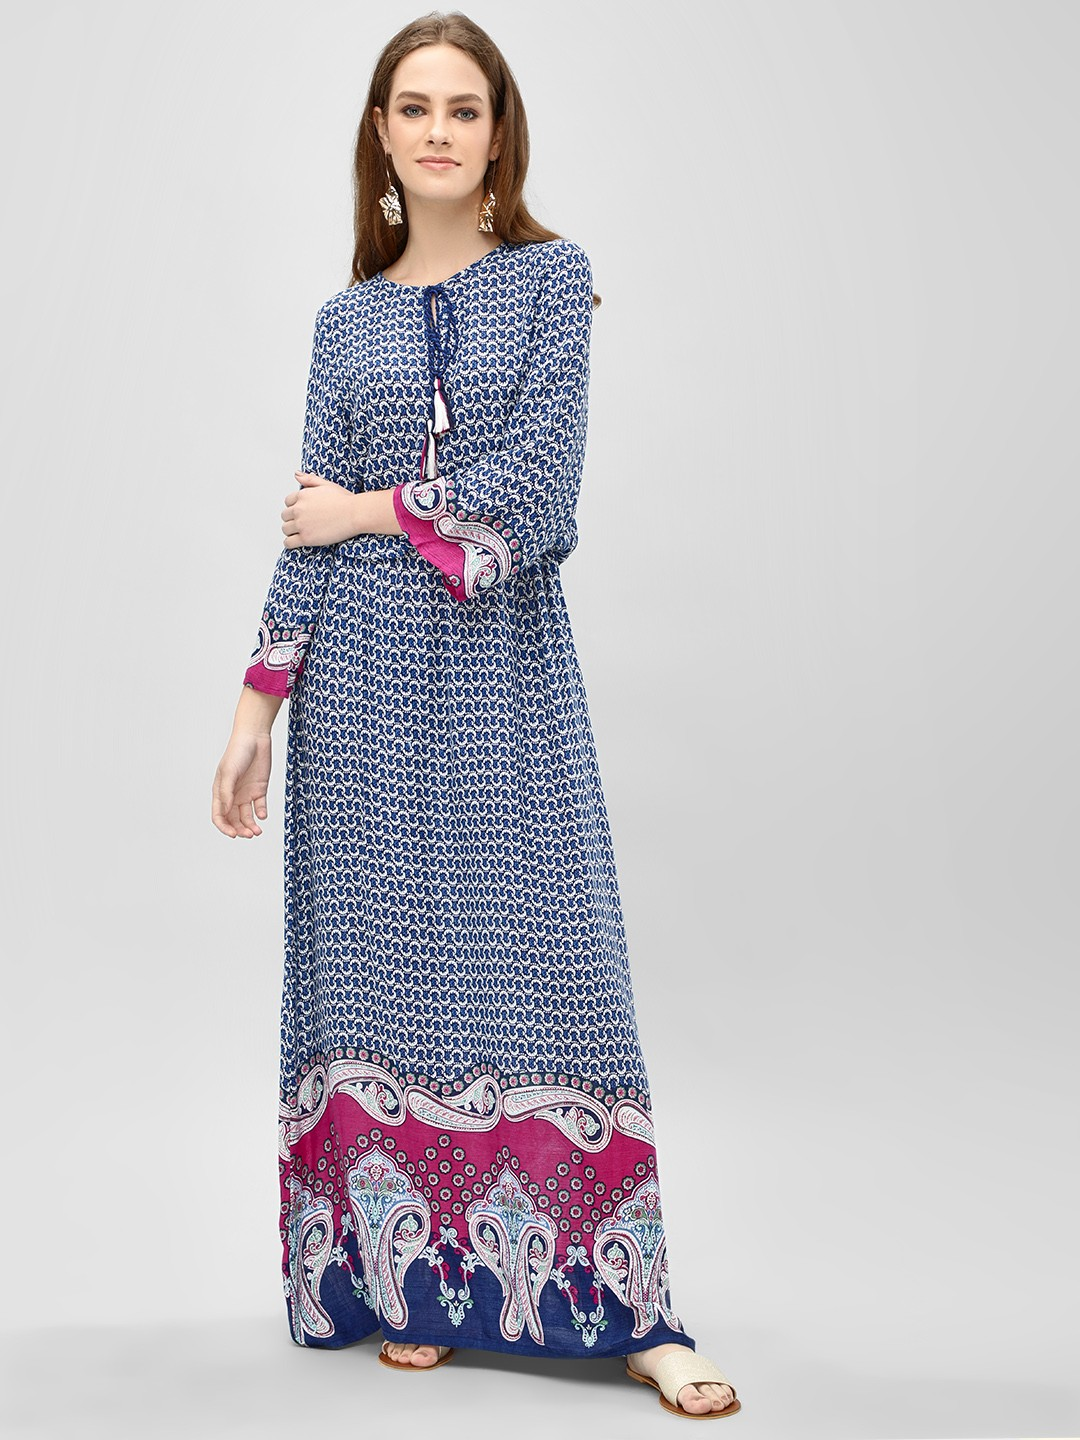 Rena Love Multi Printed Border Maxi Dress 1